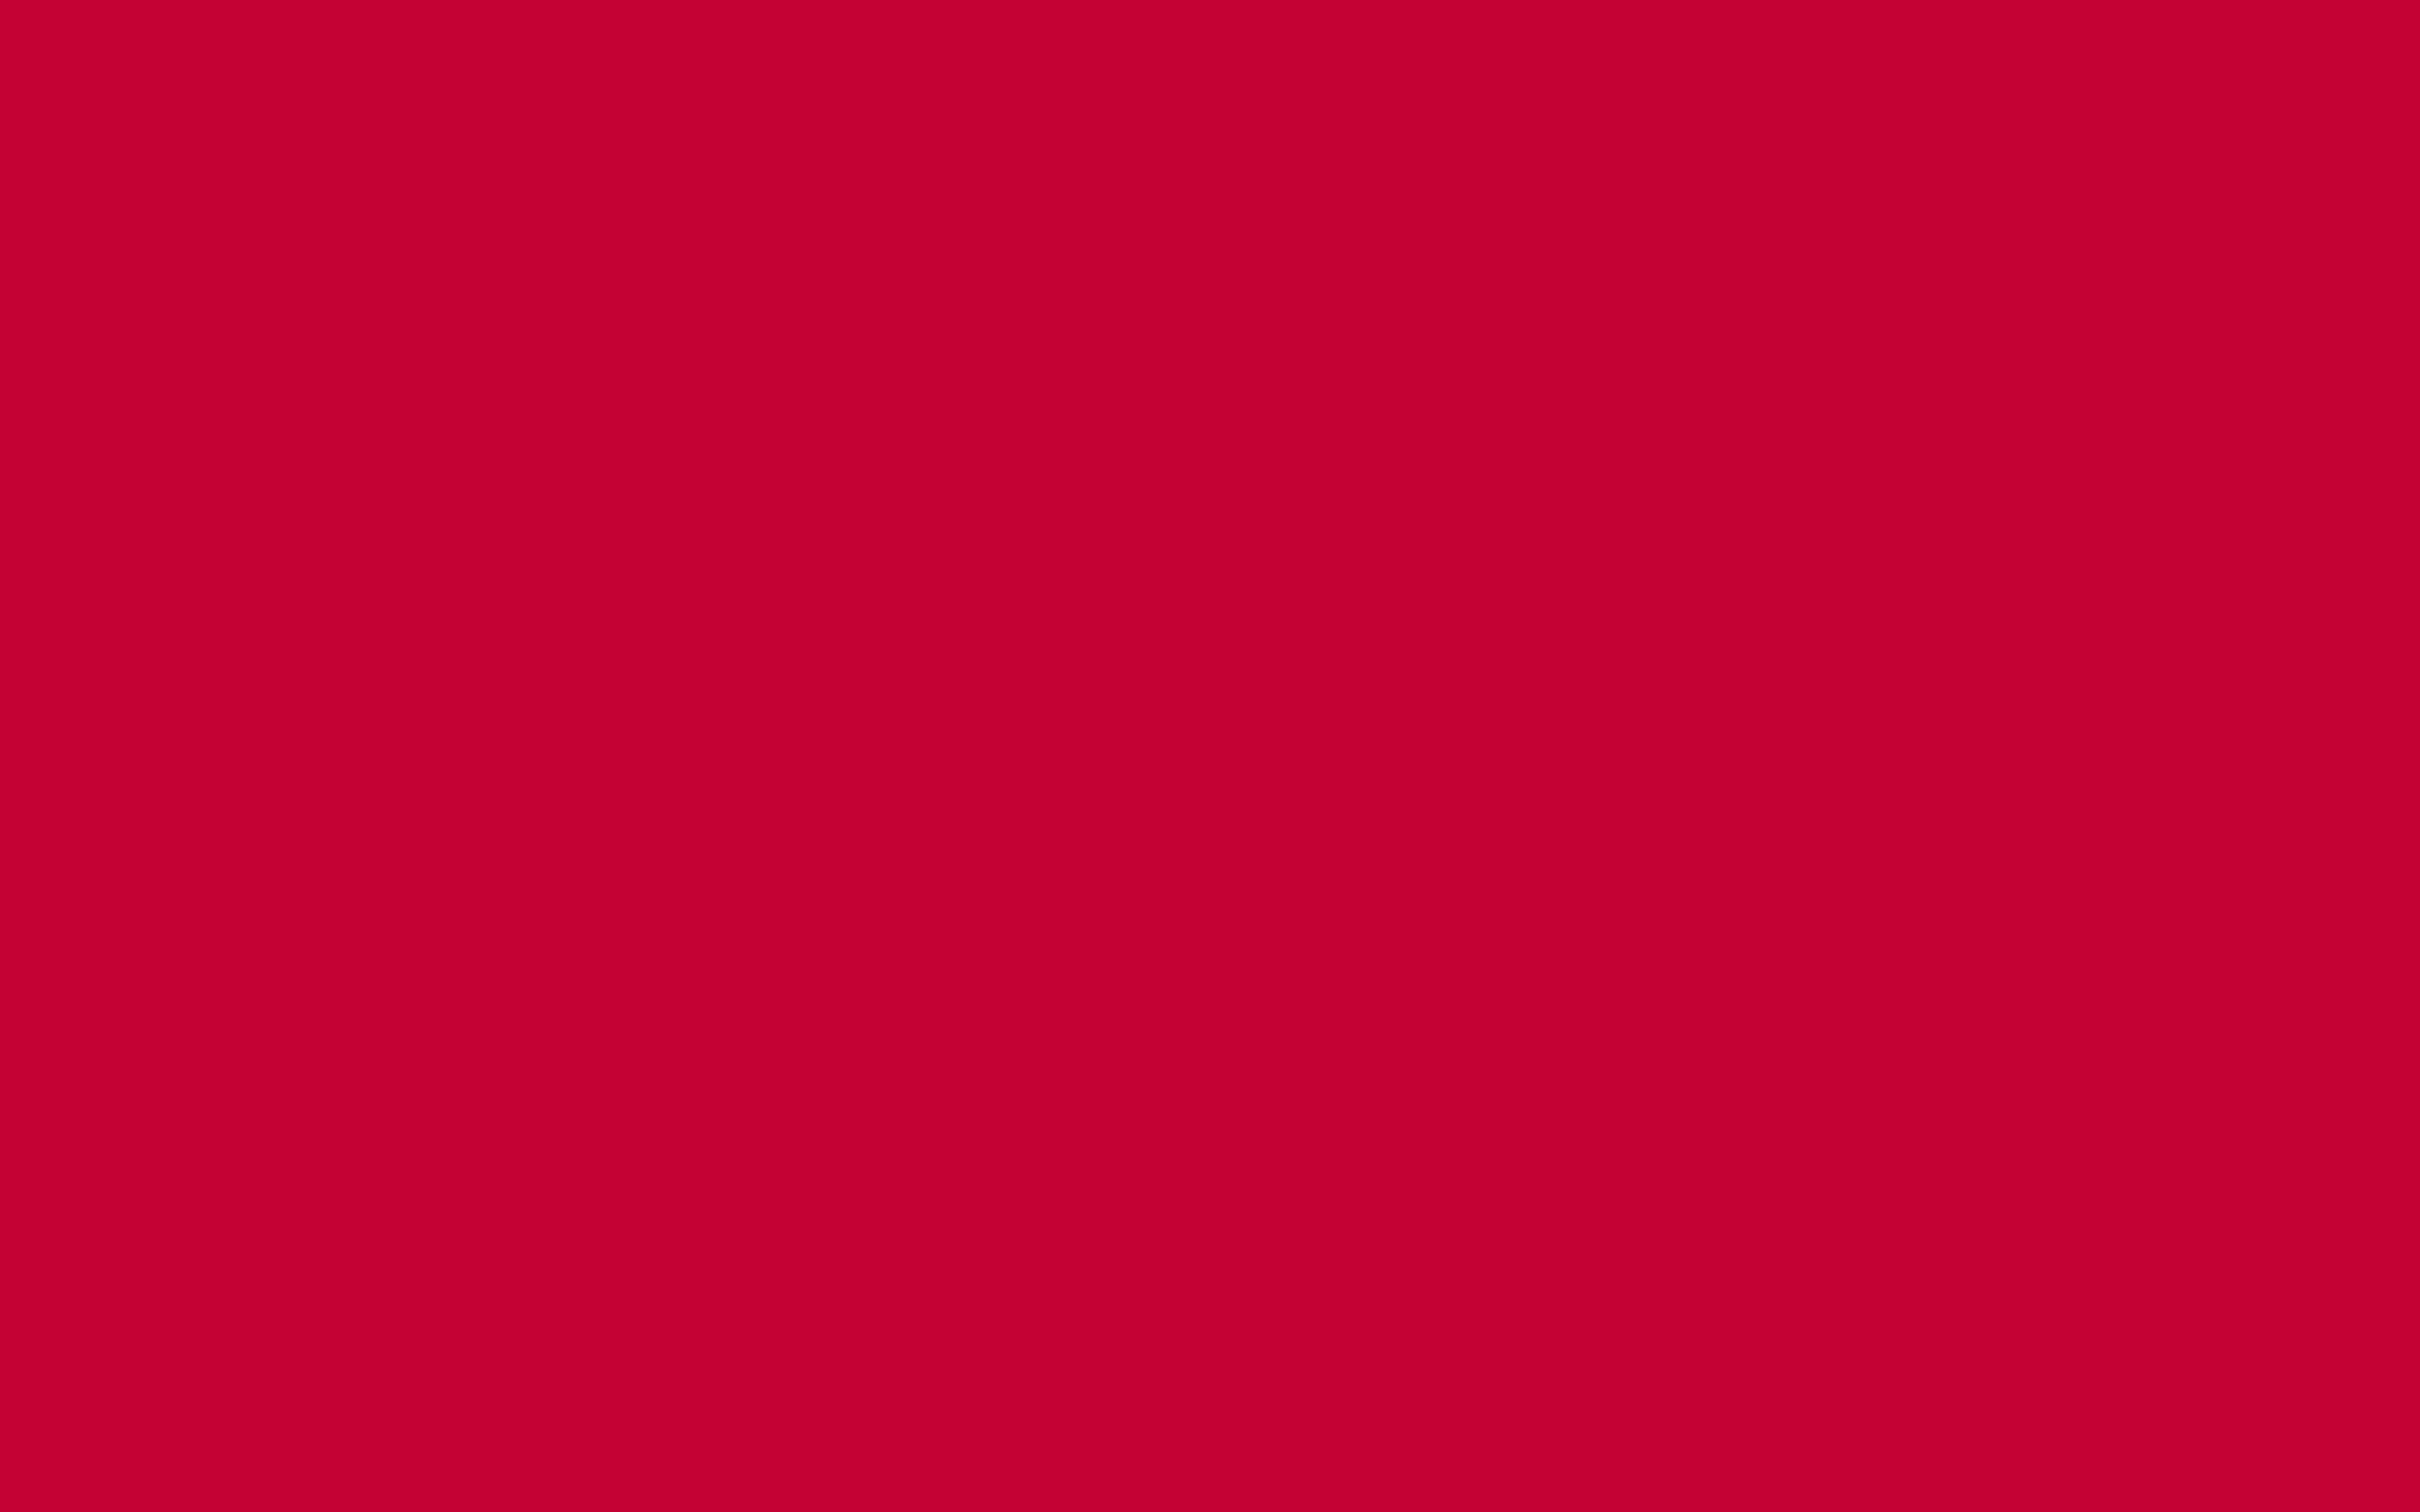 2560x1600 Red NCS Solid Color Background